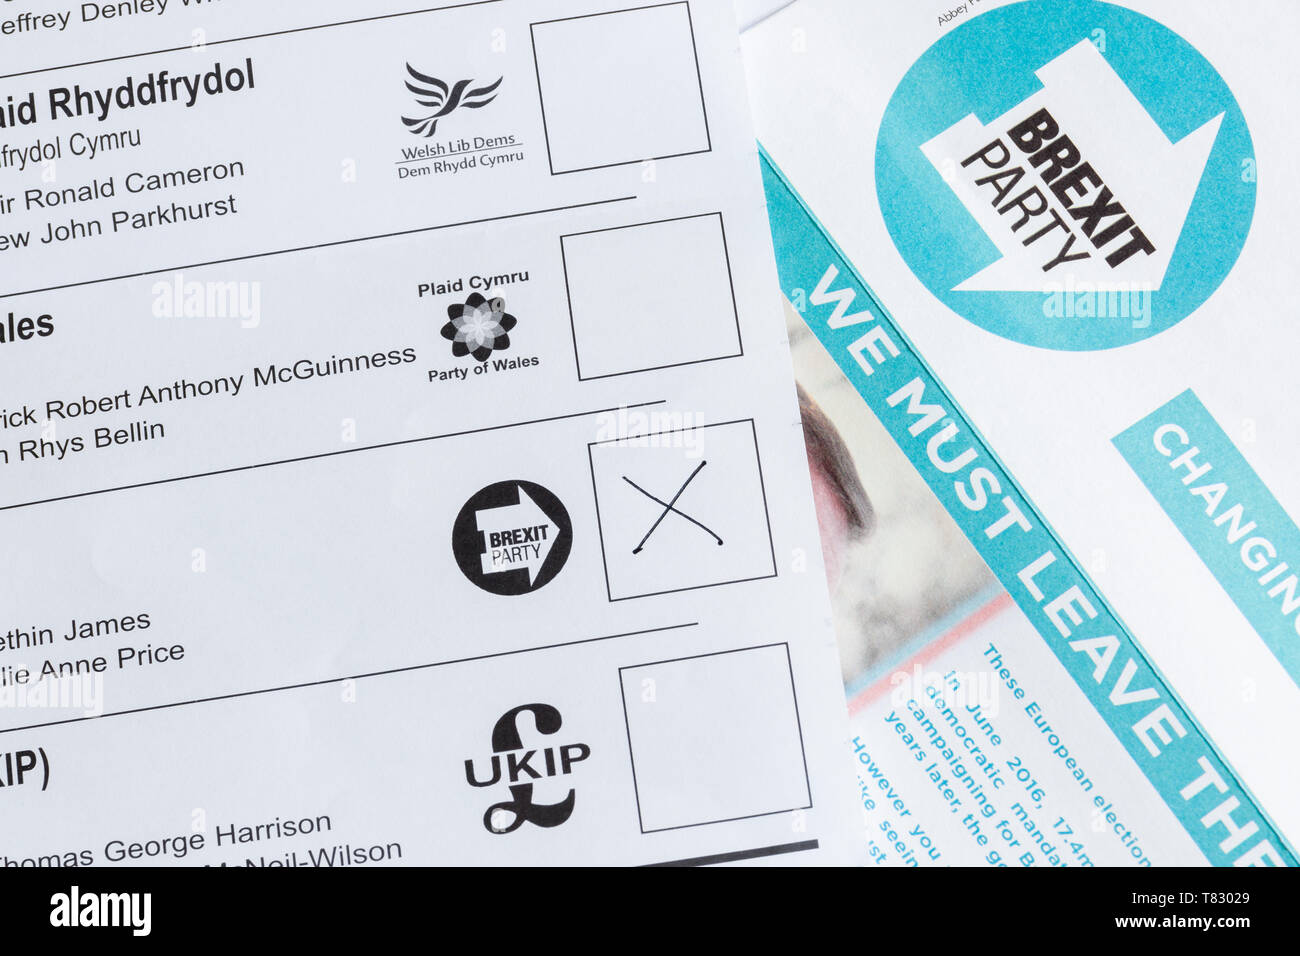 EU parliamentary election postal ballot or voting form with the Brexit party voting box and leaflet for the May 23rd 2019 elections Stock Photo